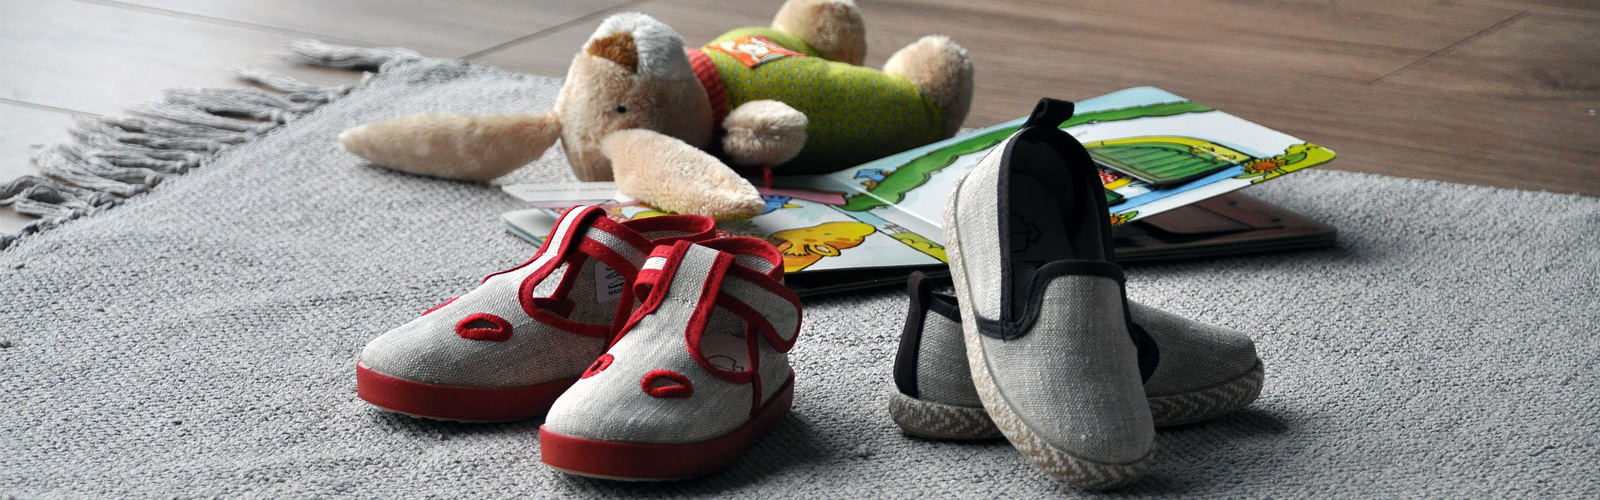 Vegan children's shoes for in & outdoors